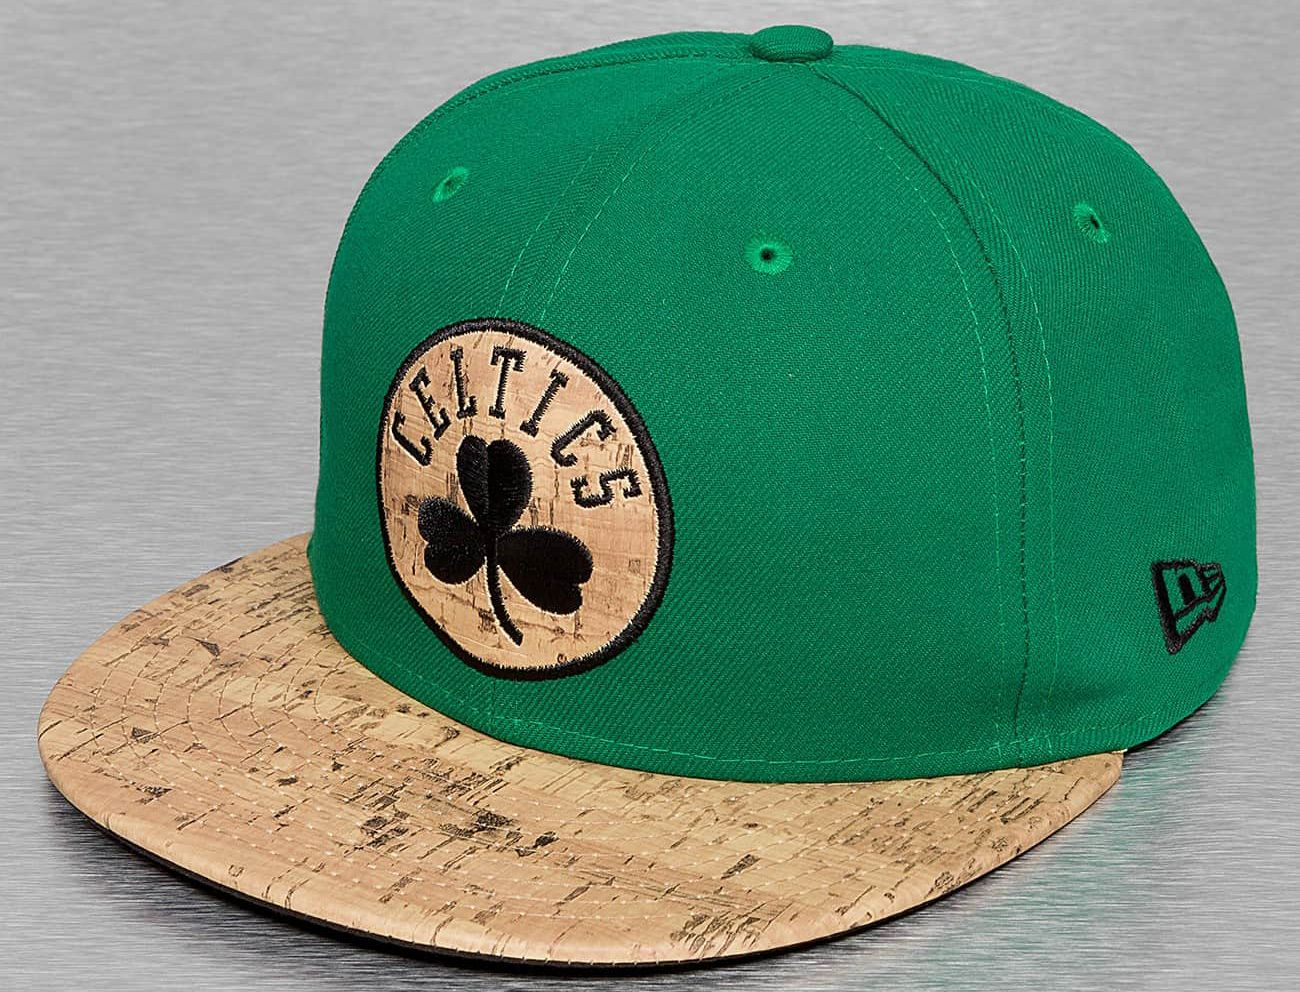 e6641e52013 Boston Celtics Cork 59Fifty Fitted Baseball Cap by NEW ERA x NBA ...